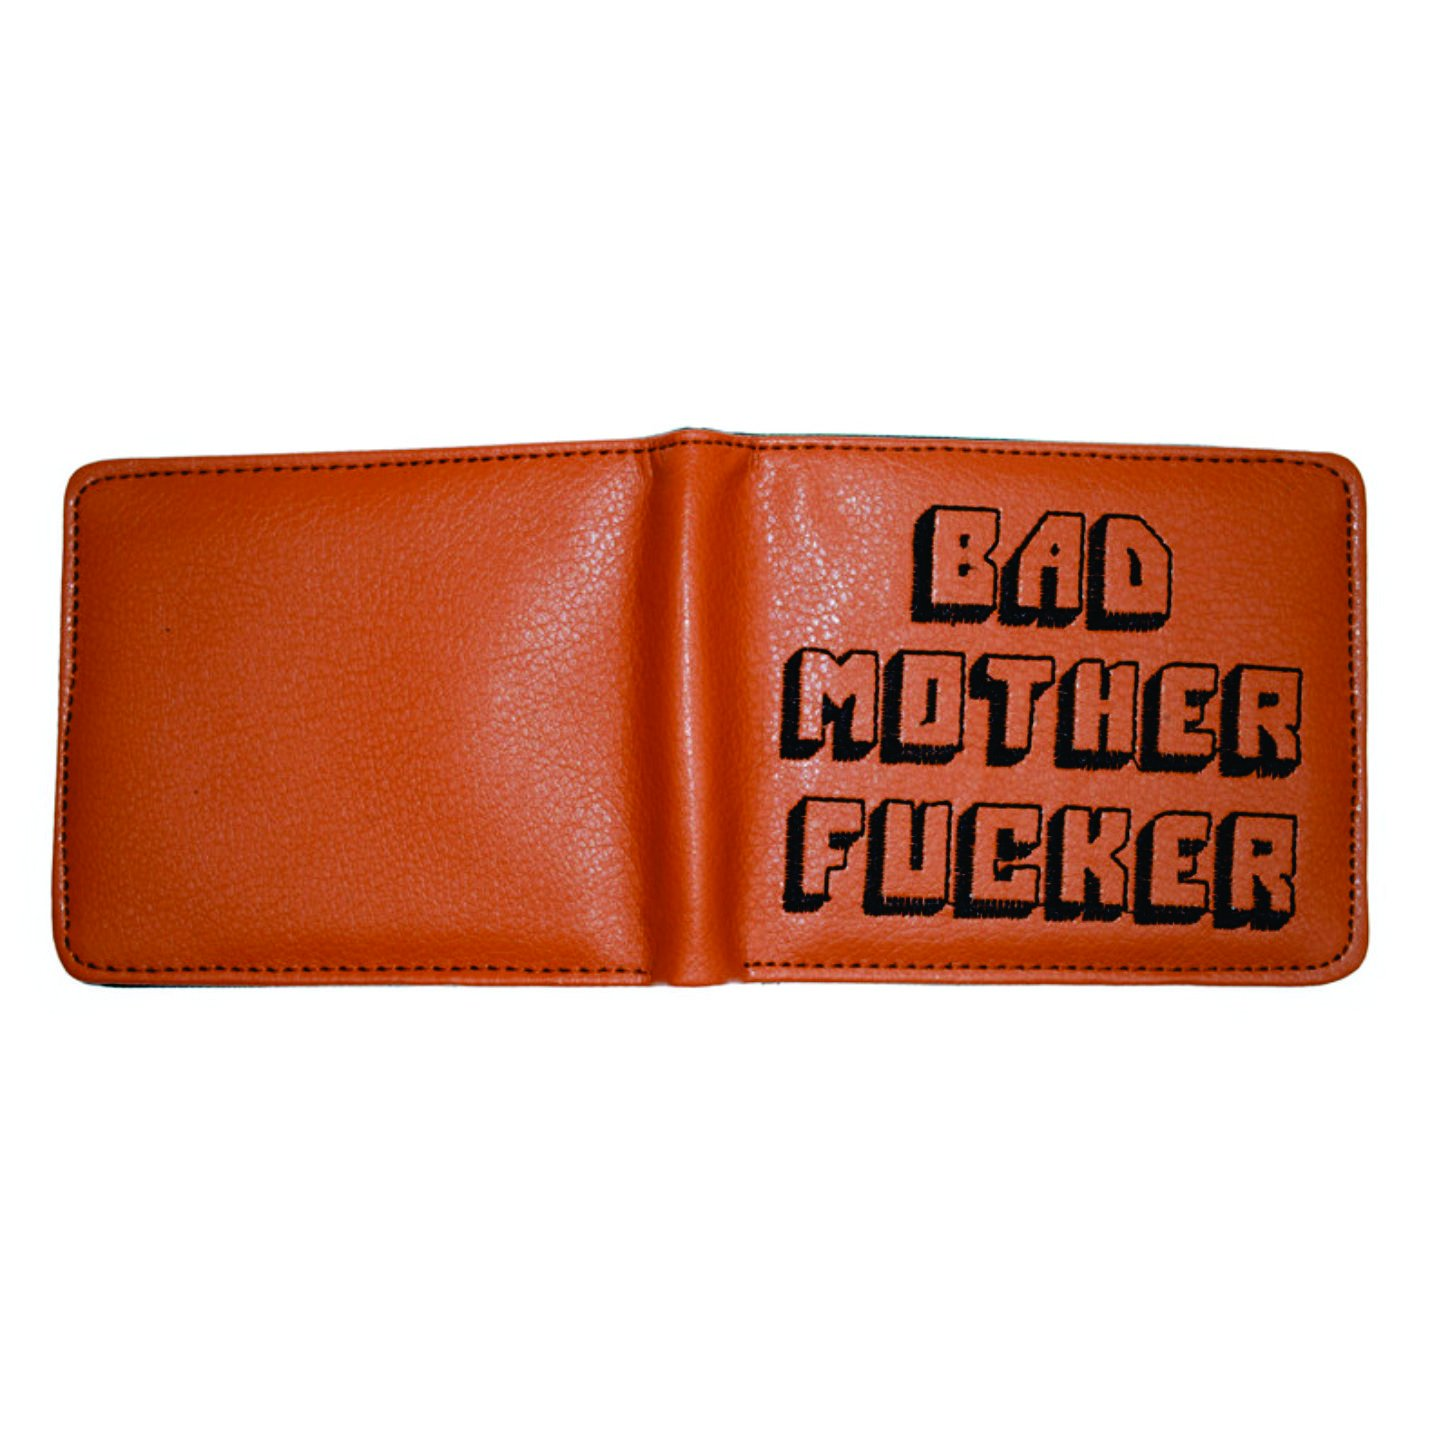 Amazon.com: Bad Mother F Ker - Cartera de piel sintética ...